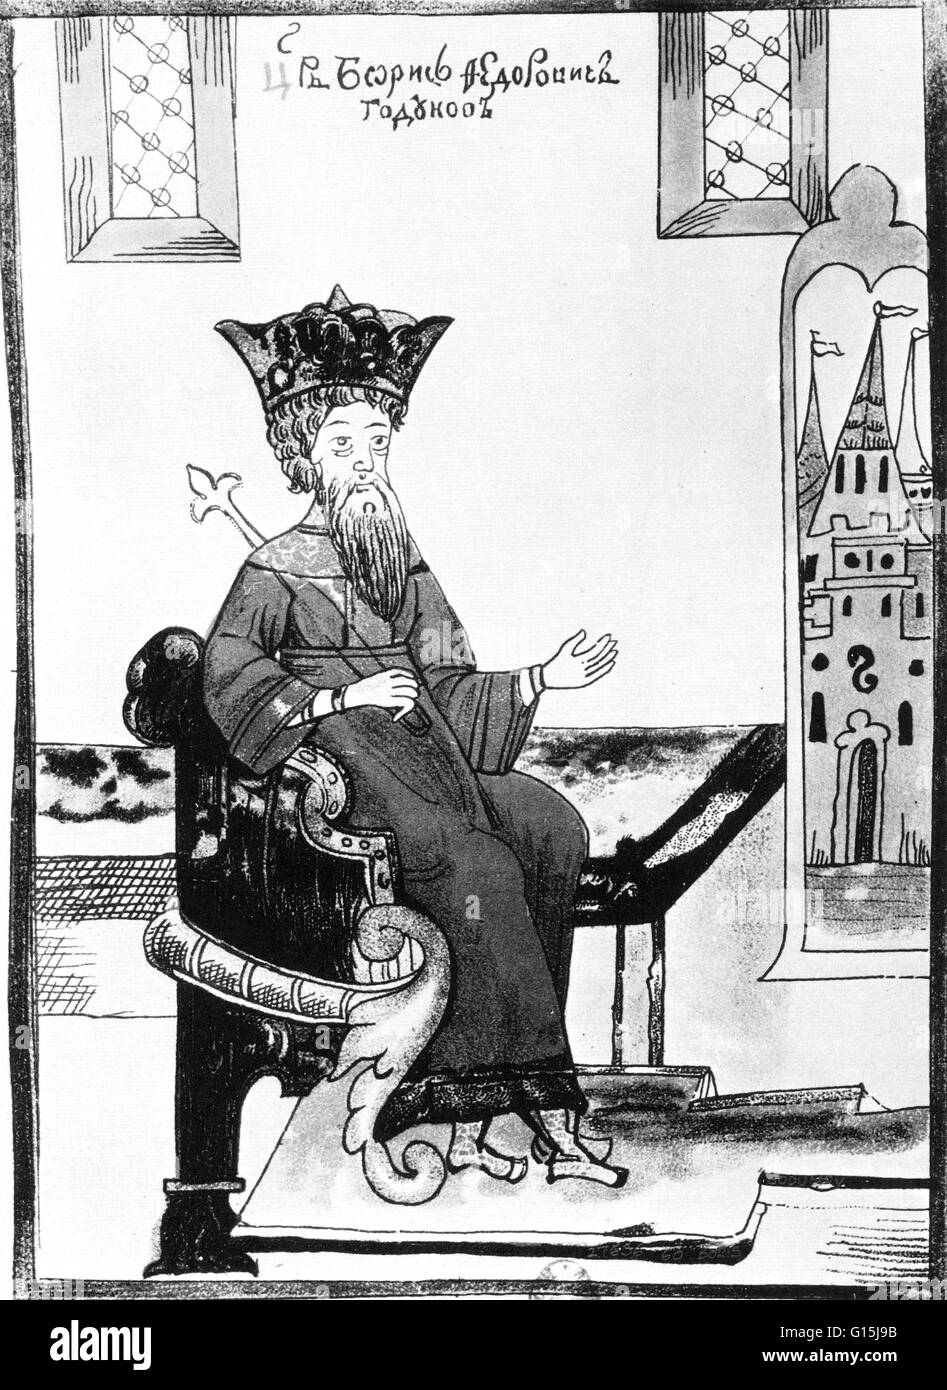 Boris Fedorovich Godunov (1551-1605) Tsar of Muscovy, the most famous member of an ancient, now extinct, Russian - Stock Image